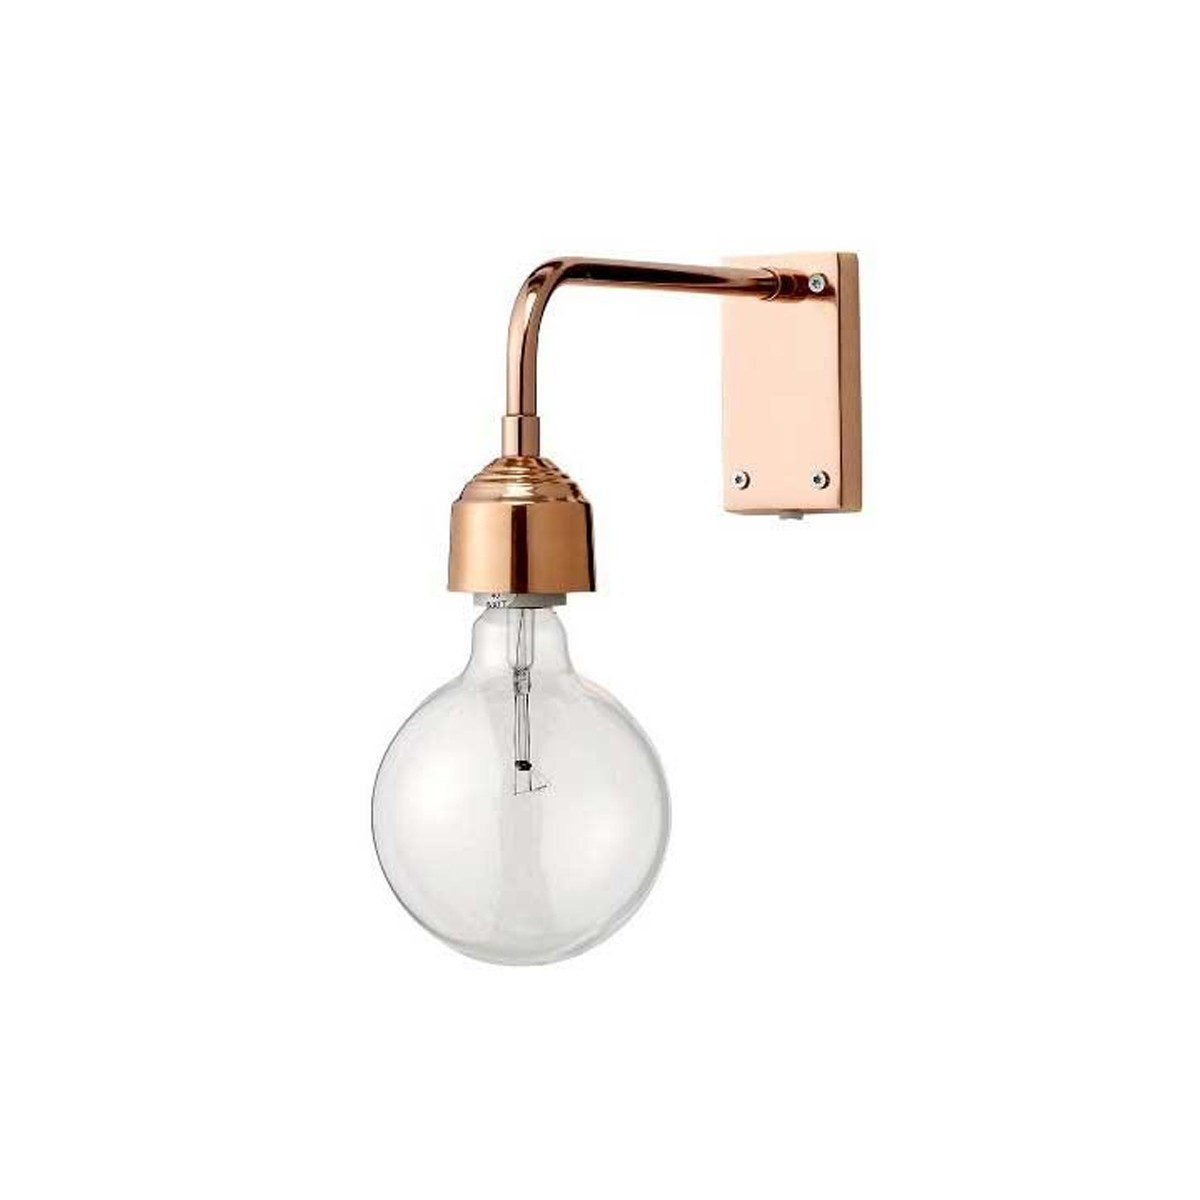 Copper metal wall lamp that brings a touch of modern-industrial design to the living room or bedroom. photo